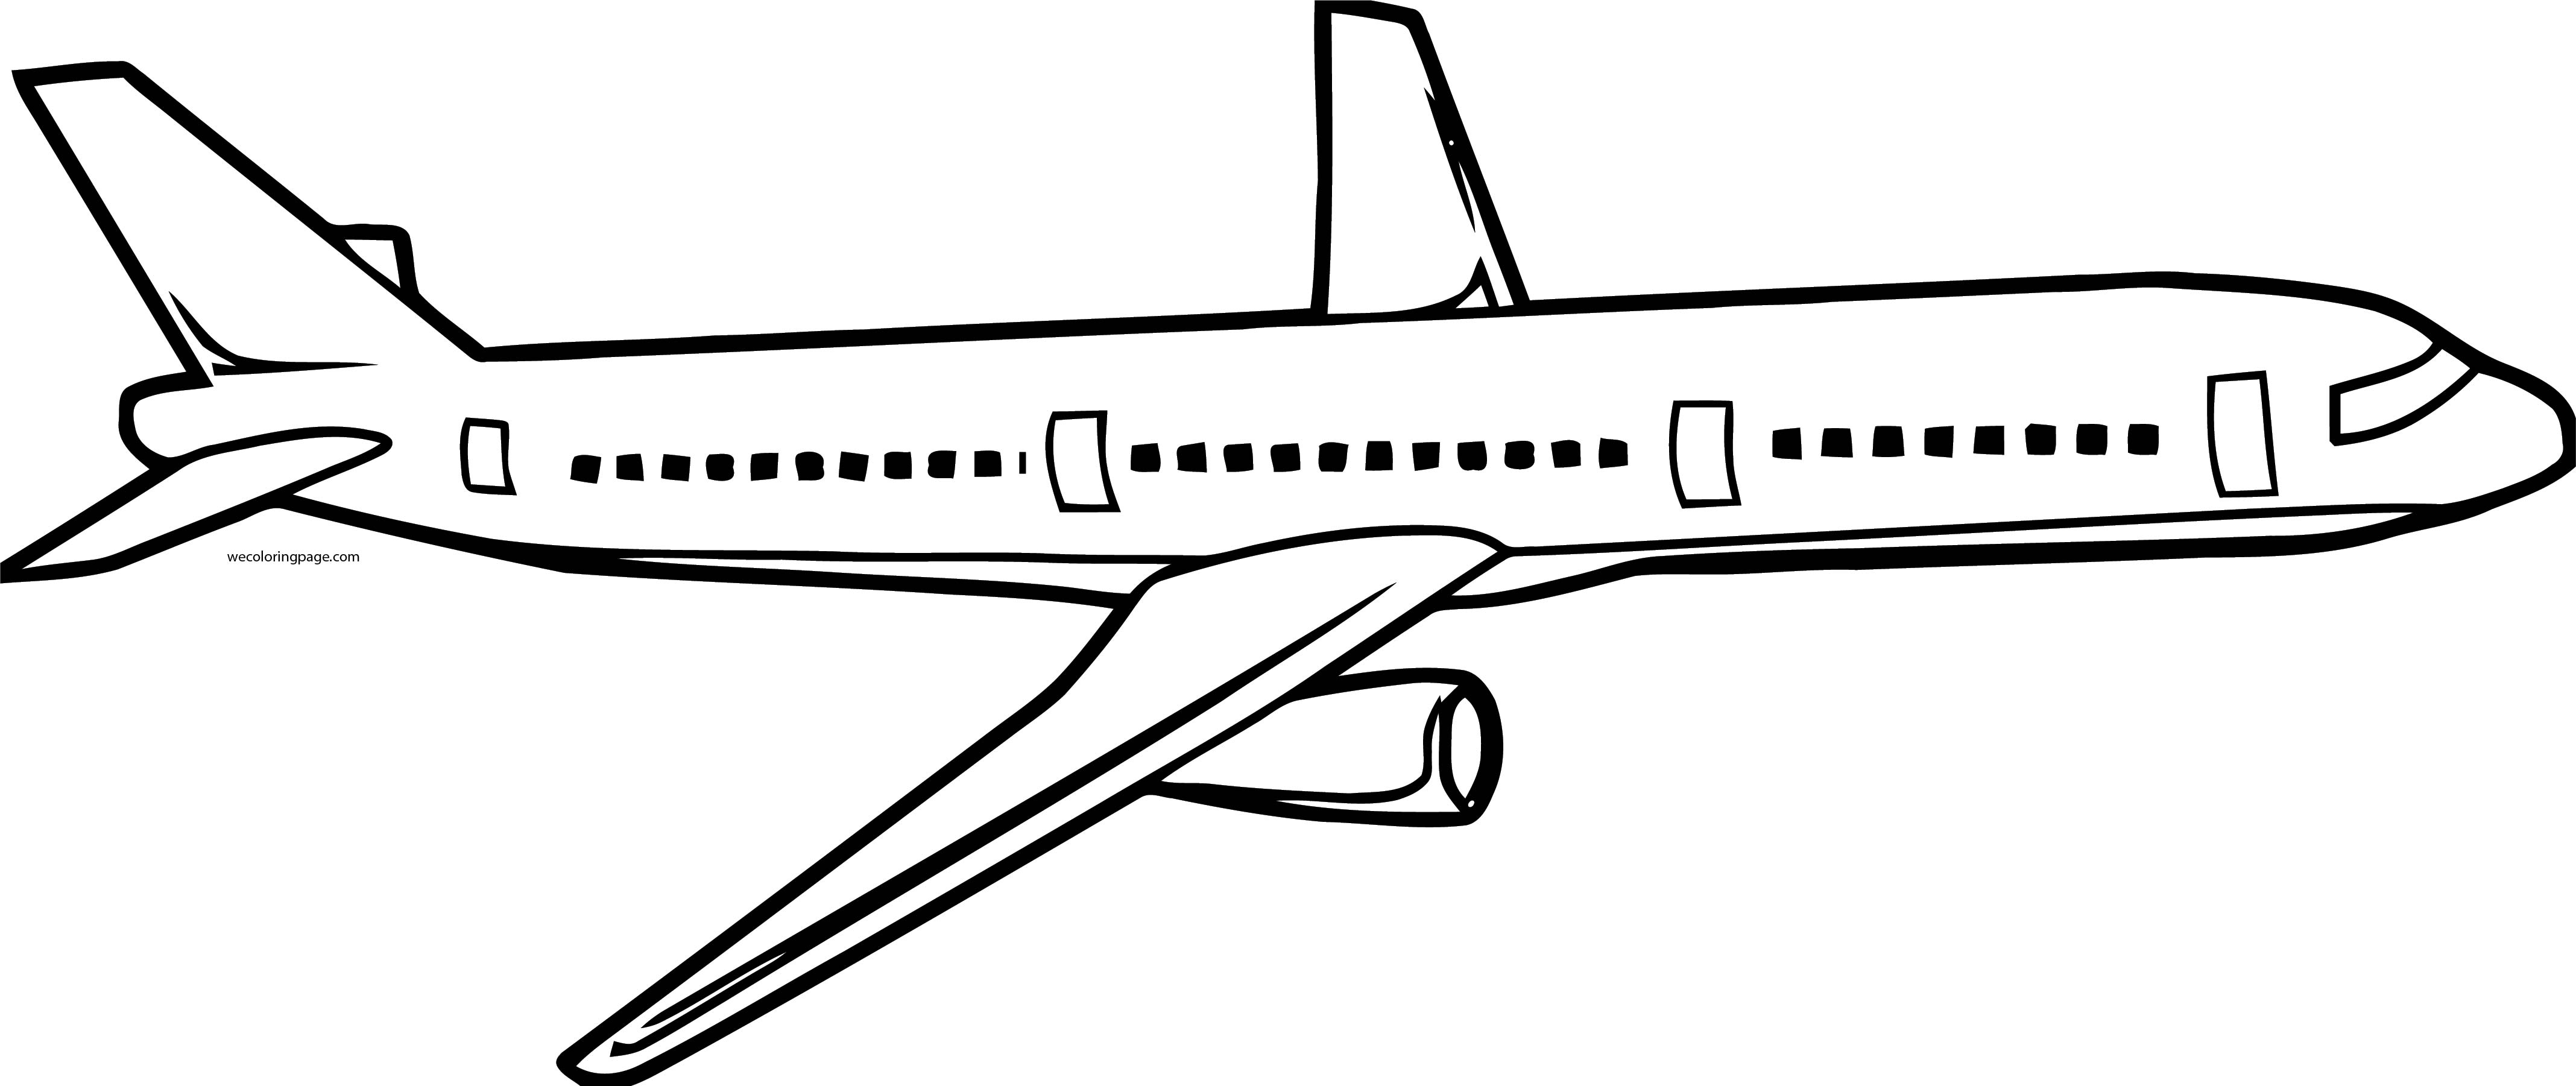 But Plane We Coloring Page